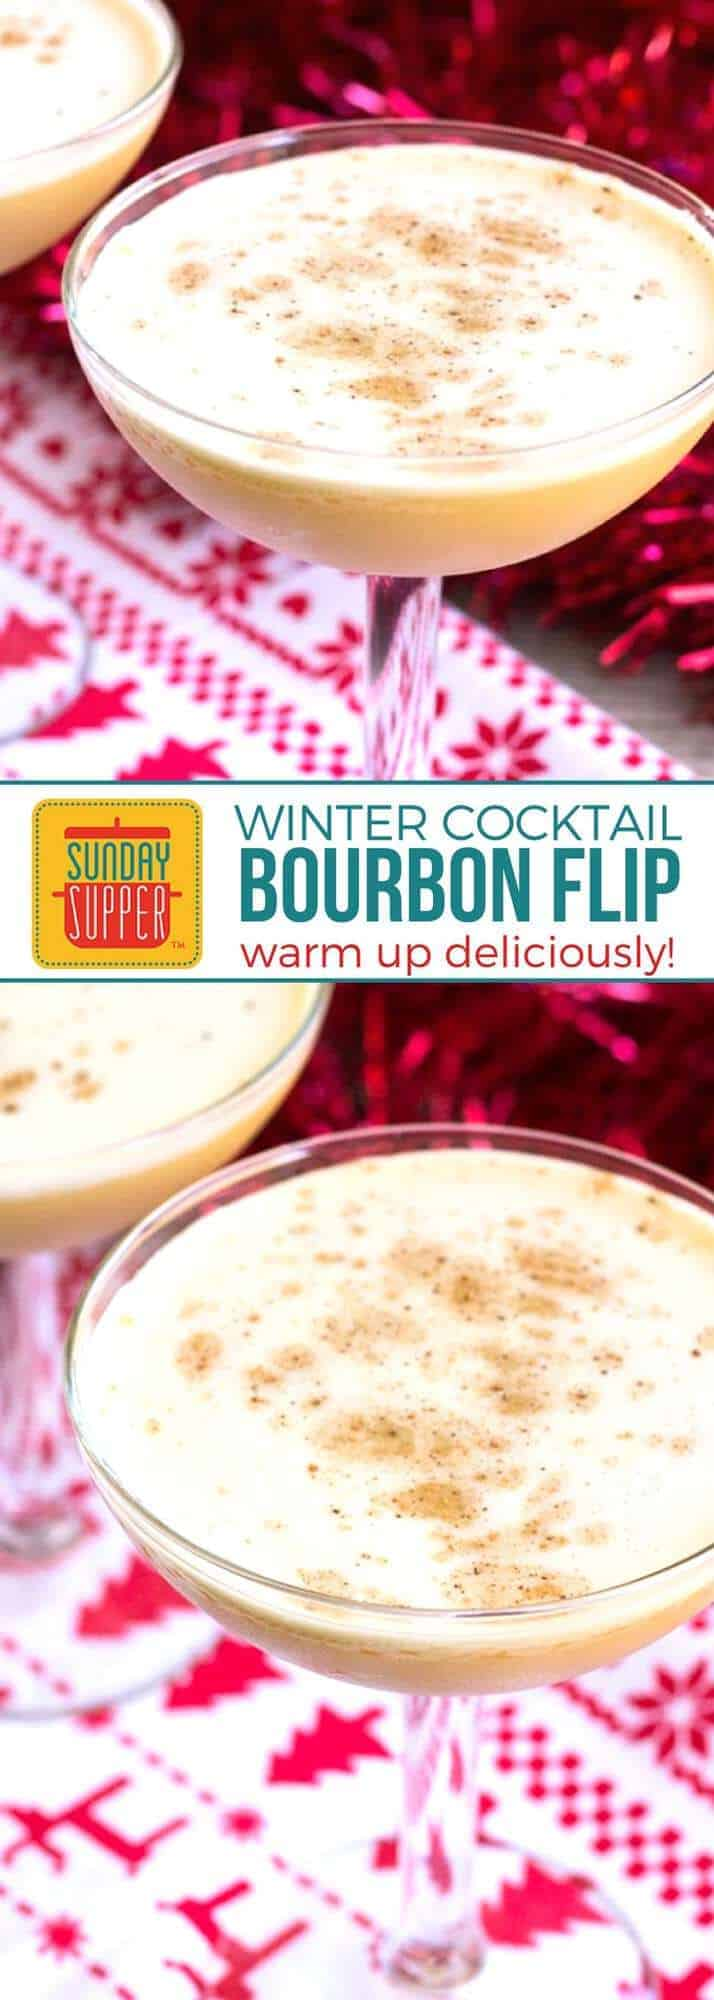 This easy Bourbon Flip Cocktail is perfect for your winter get togethers! Layered with inviting seasonal aromas, this drink will make everyone feel toasty! Save this recipe for your holiday parties from Thanksgiving to Christmas and through New Year's Eve! Serve this along side your favorite eggnog recipe and watch it disappear. Our Bourbon Flip is lighter and maybe even tastier than eggnog too! #SundaySupper #CocktailRecipes #HolidayRecipes #EasyRecipes